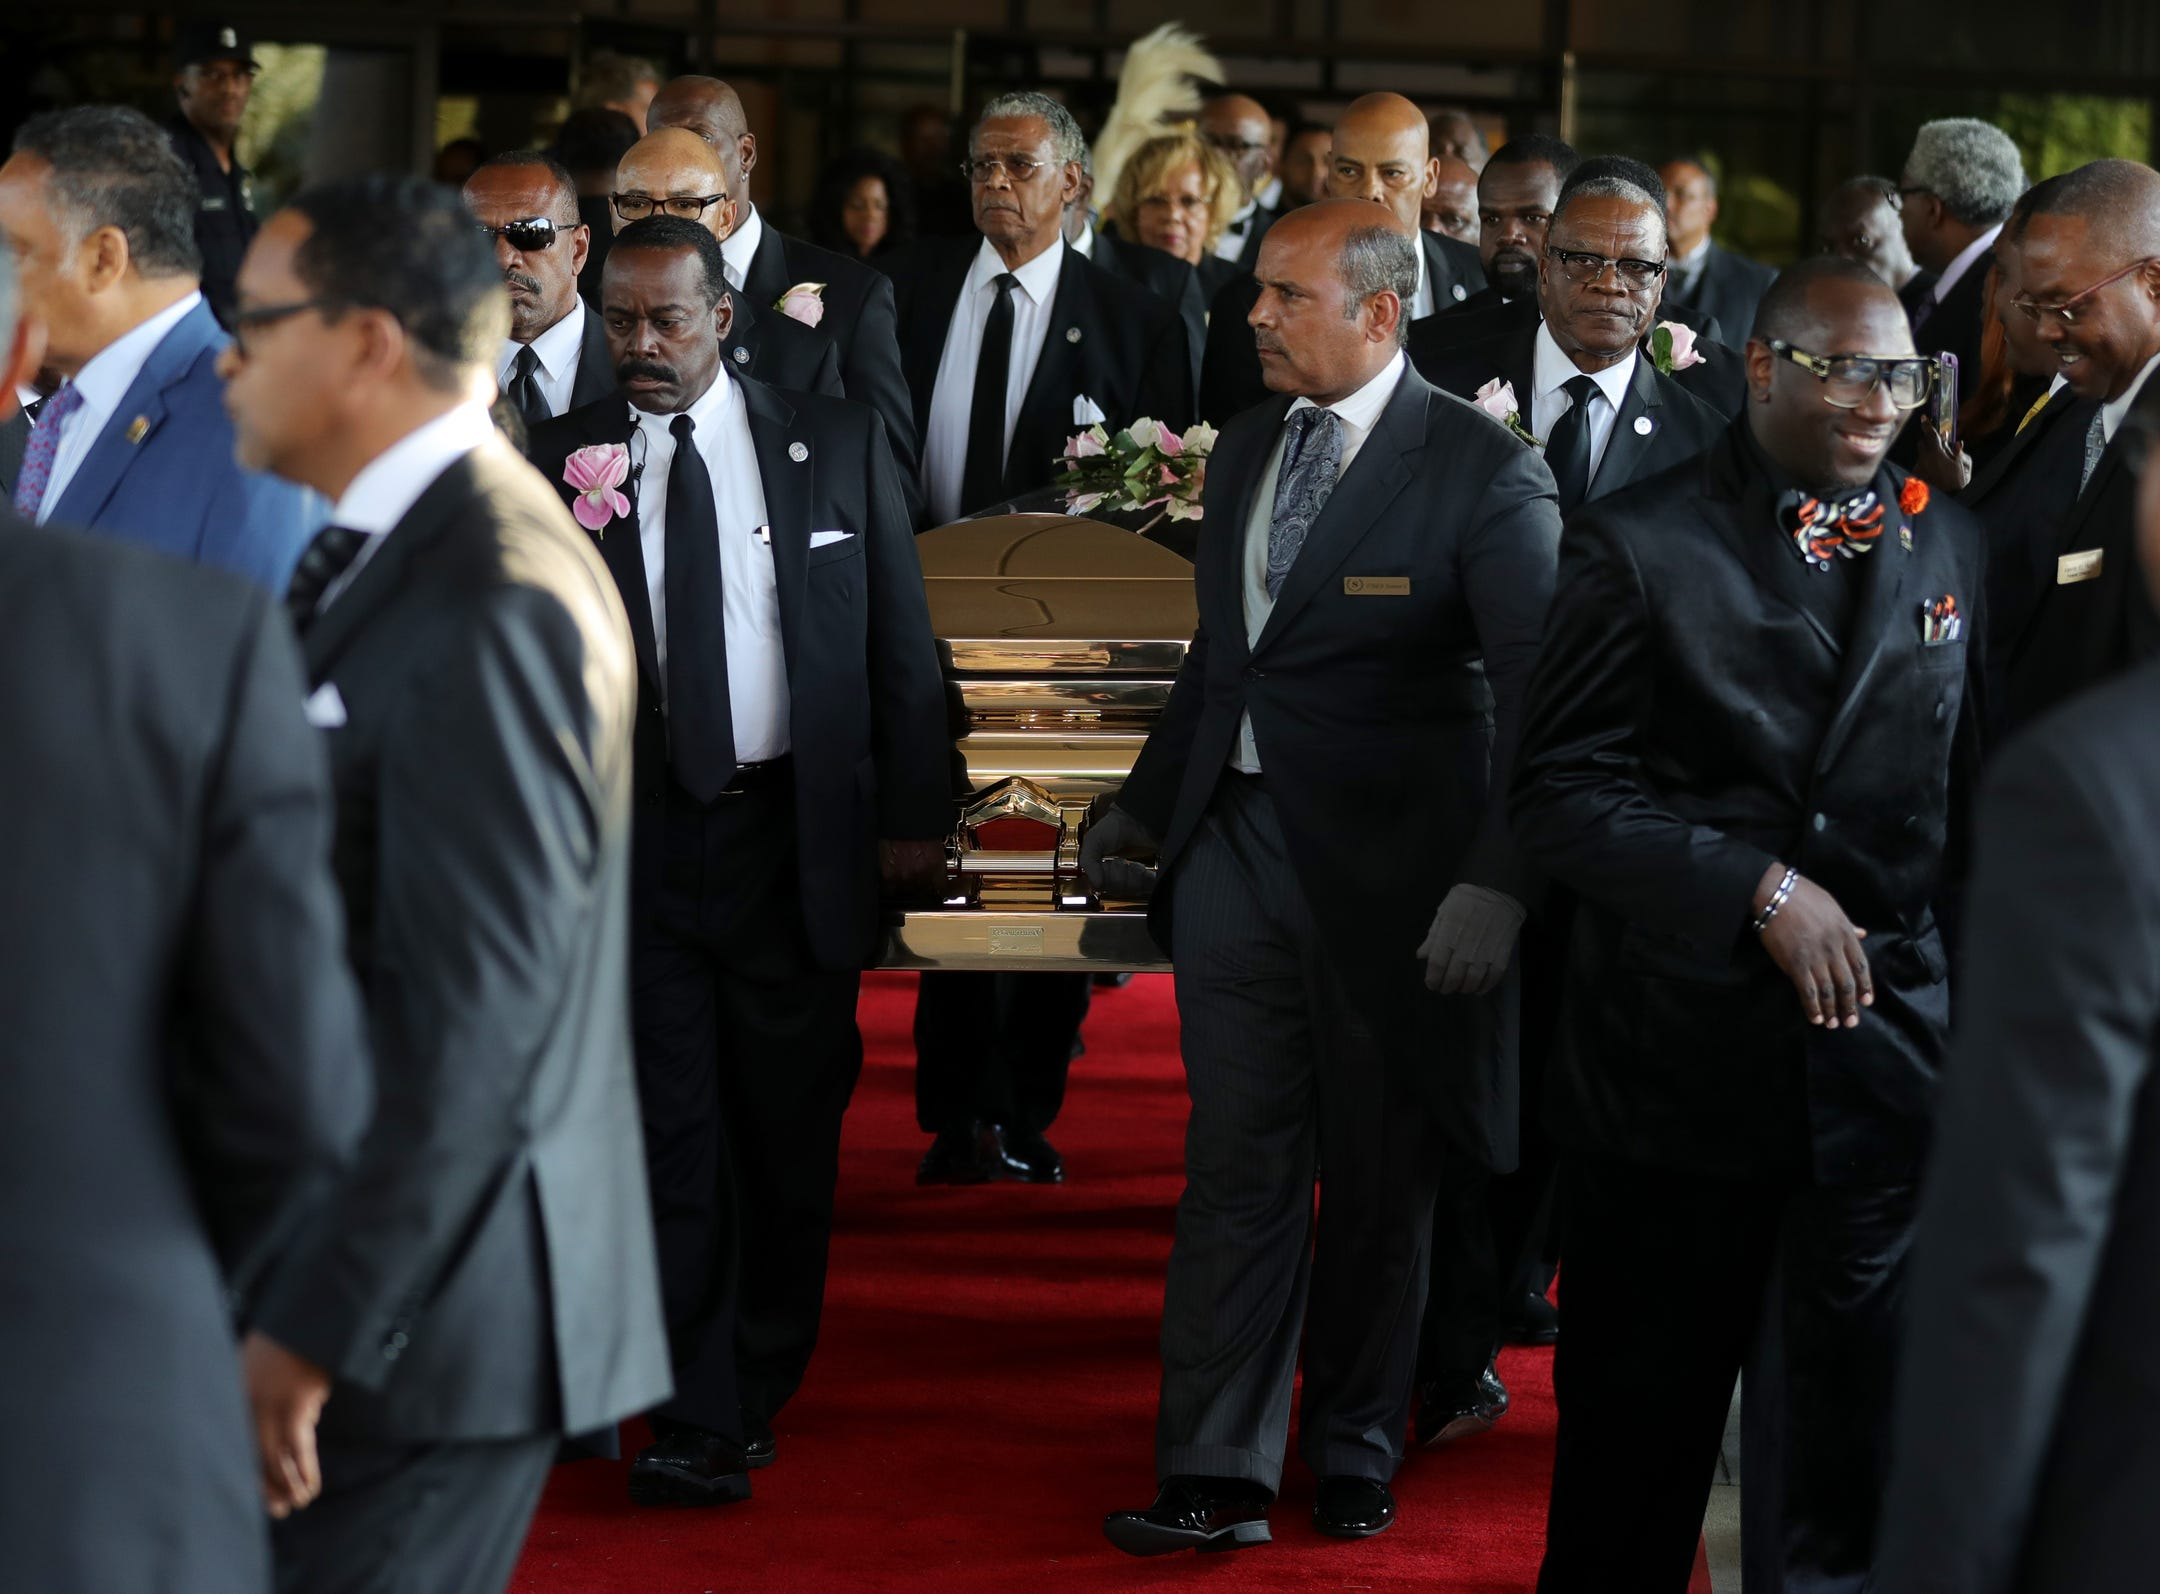 Aretha Franklin's casket is carried to a waiting hearse at Greater Grace Temple following her funeral on Friday, August 31, 2018.